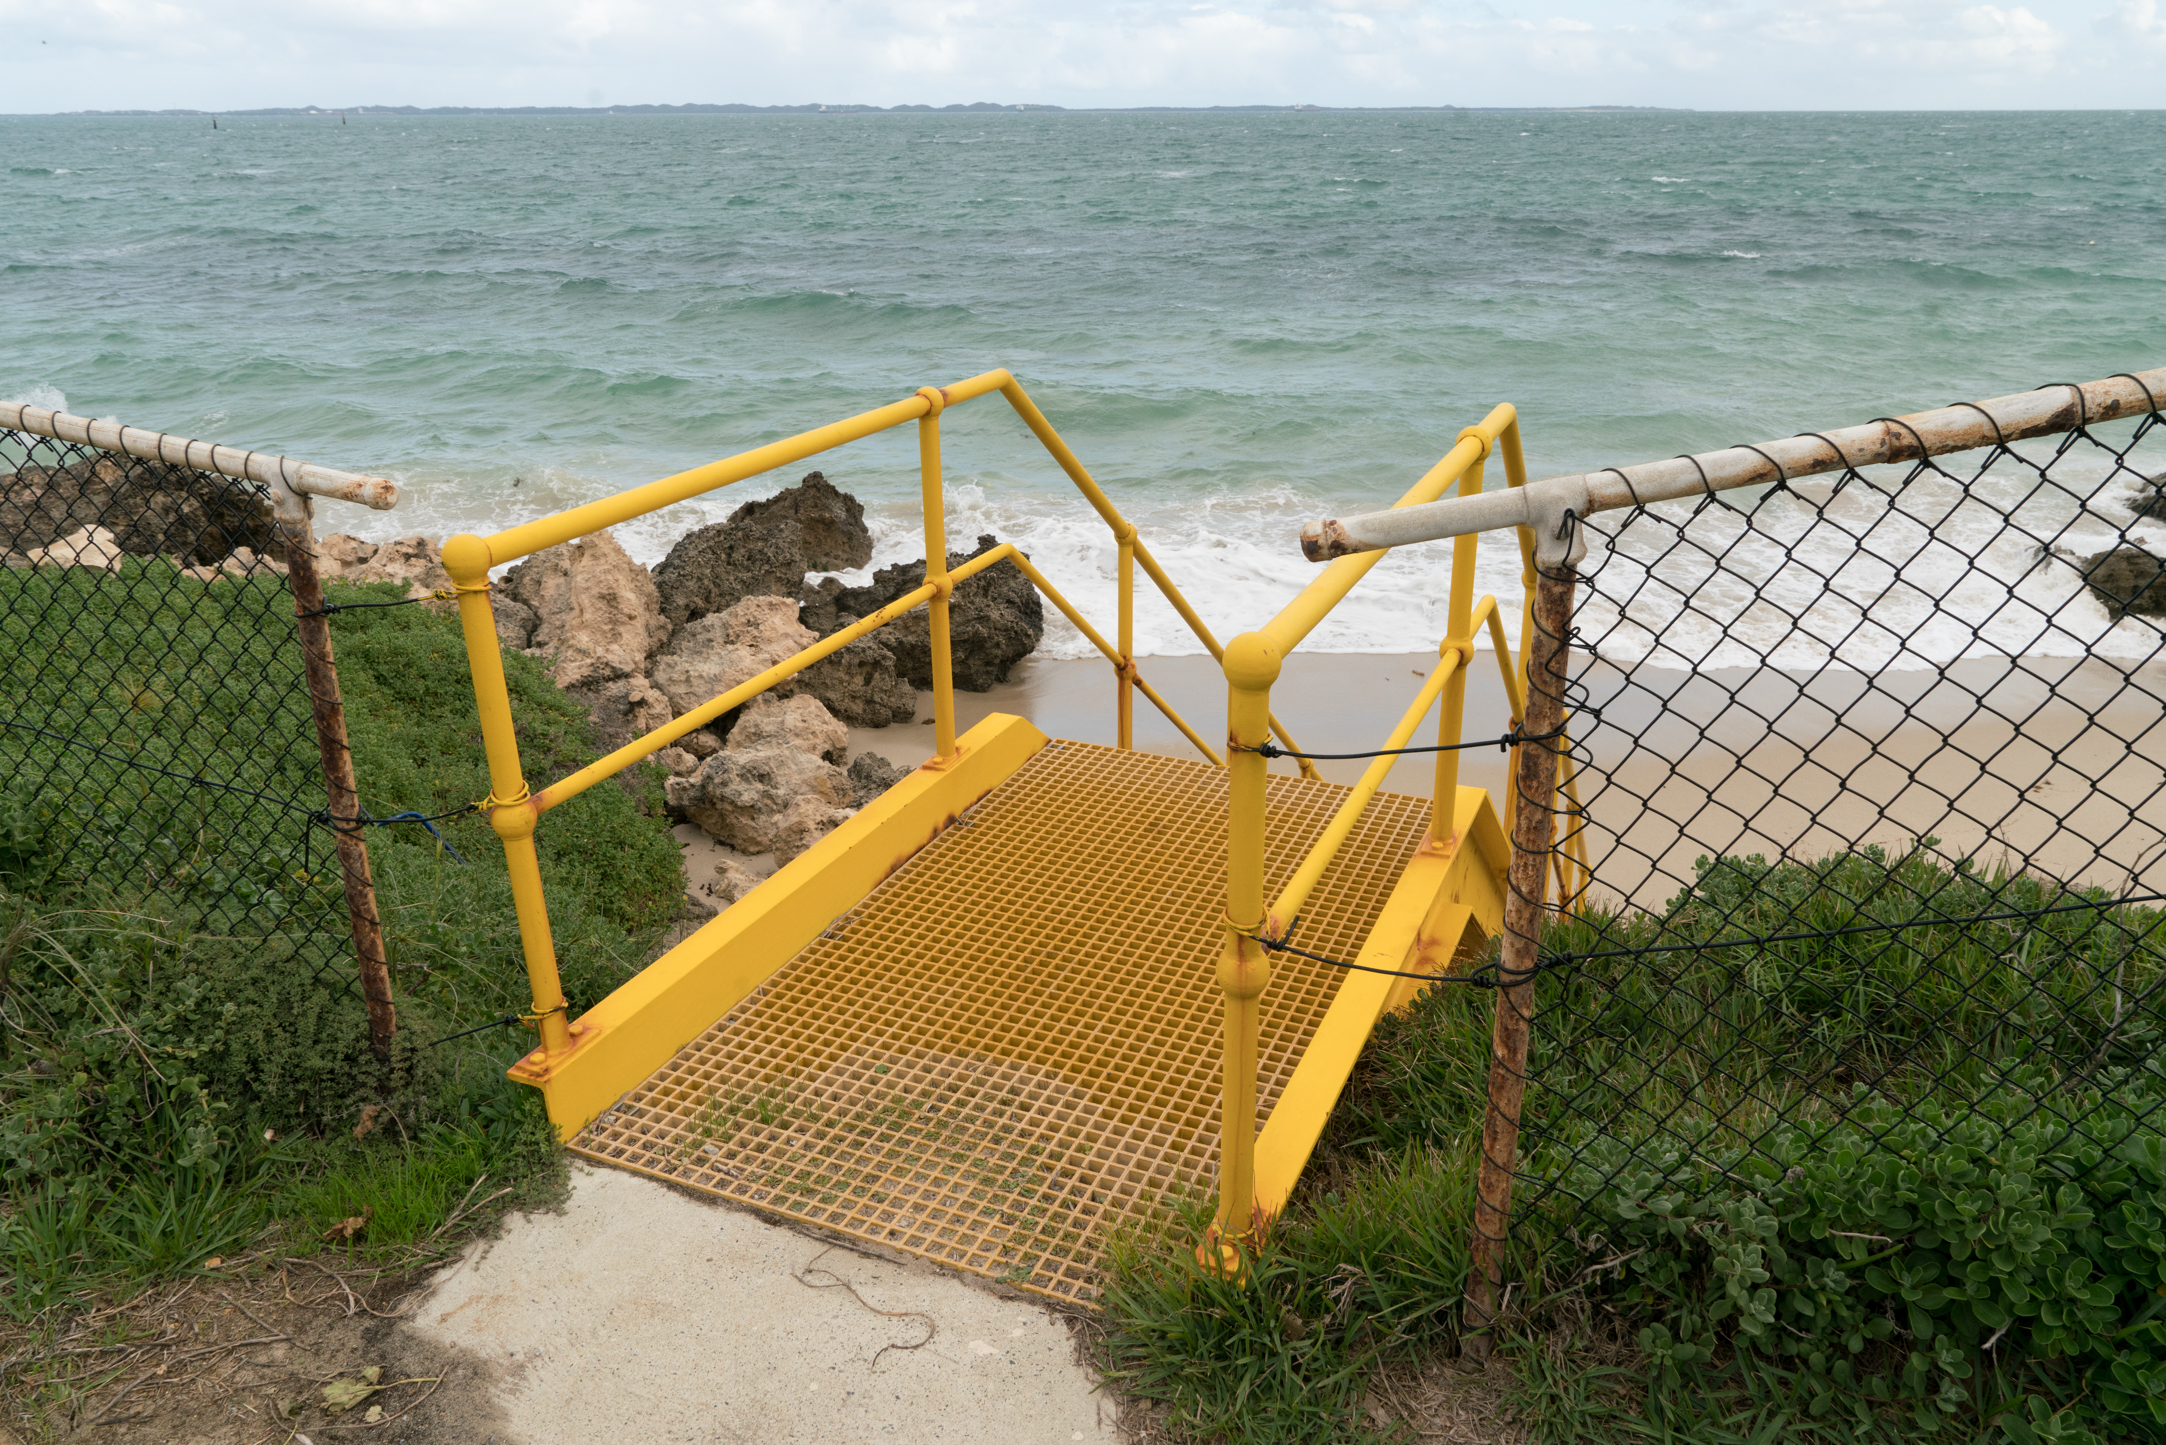 Plate 20: Steps down to one of the small beaches